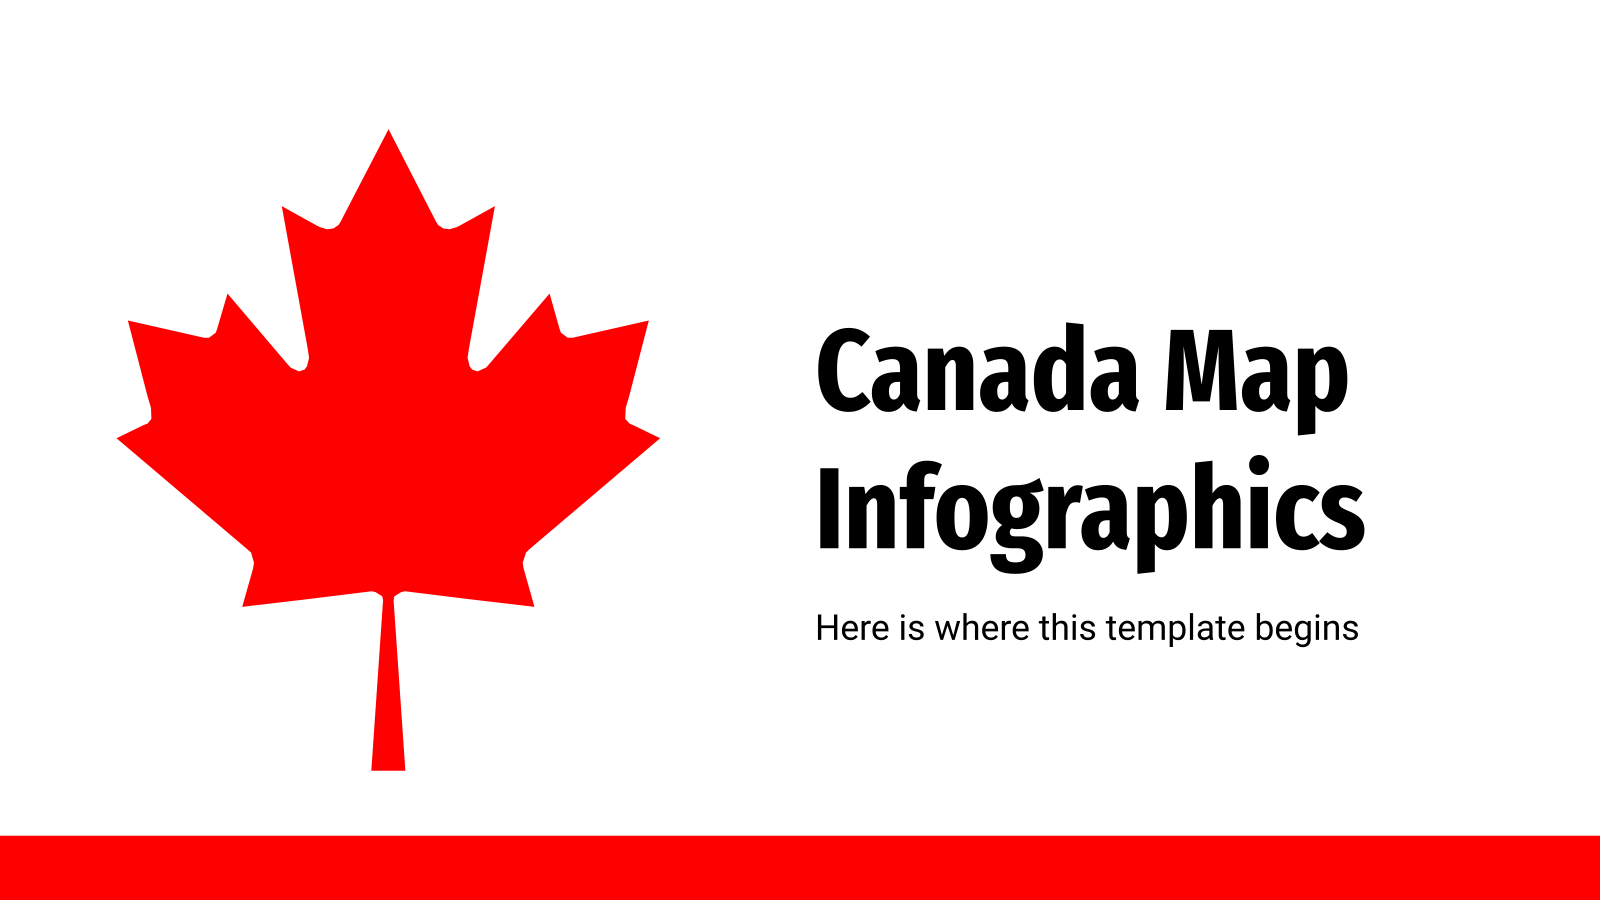 Canada map infographics presentation template